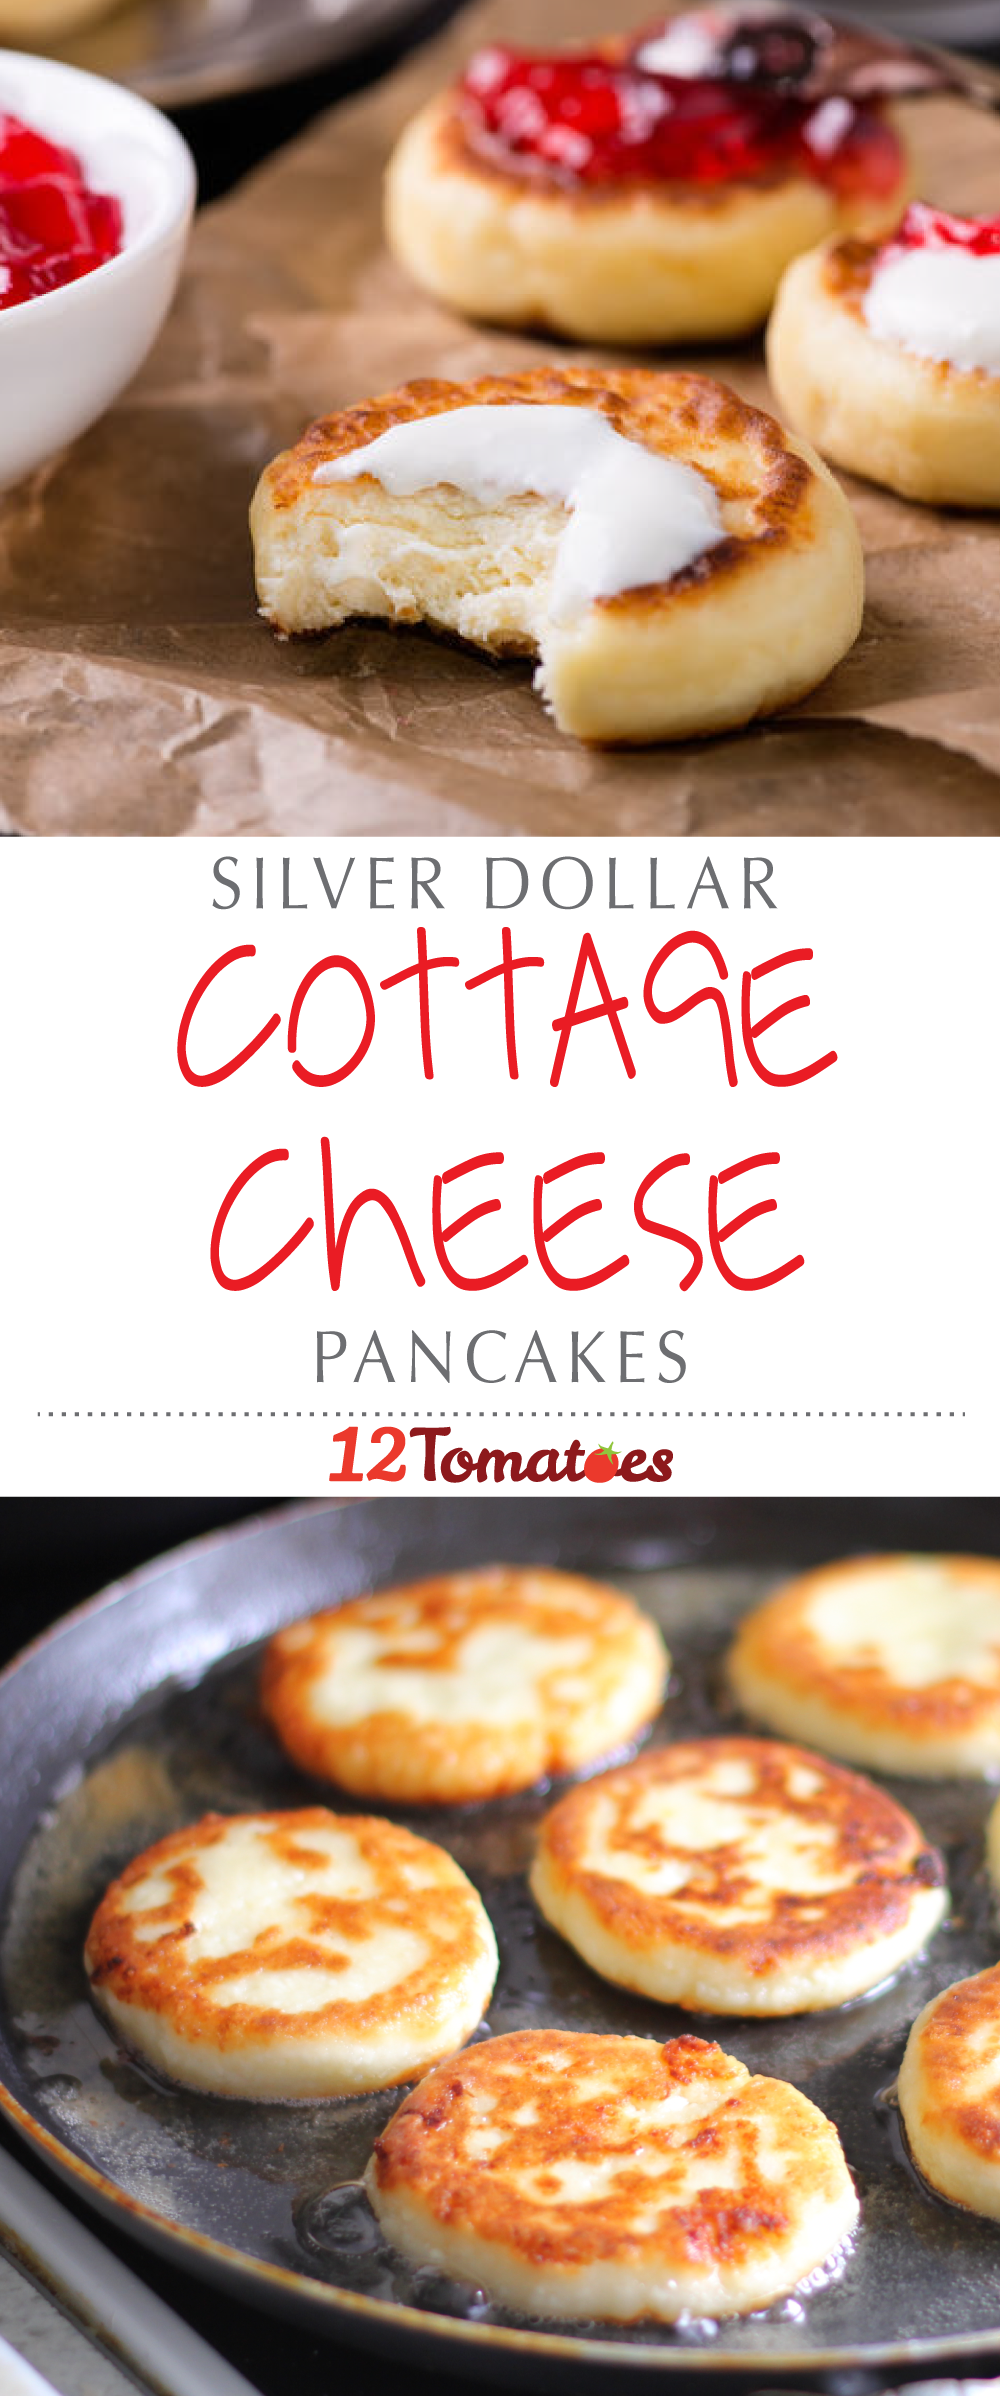 Fluffy Cottage Cheese Pancakes Recipe Cottage Cheese Recipes Recipes Cottage Cheese Nutrition